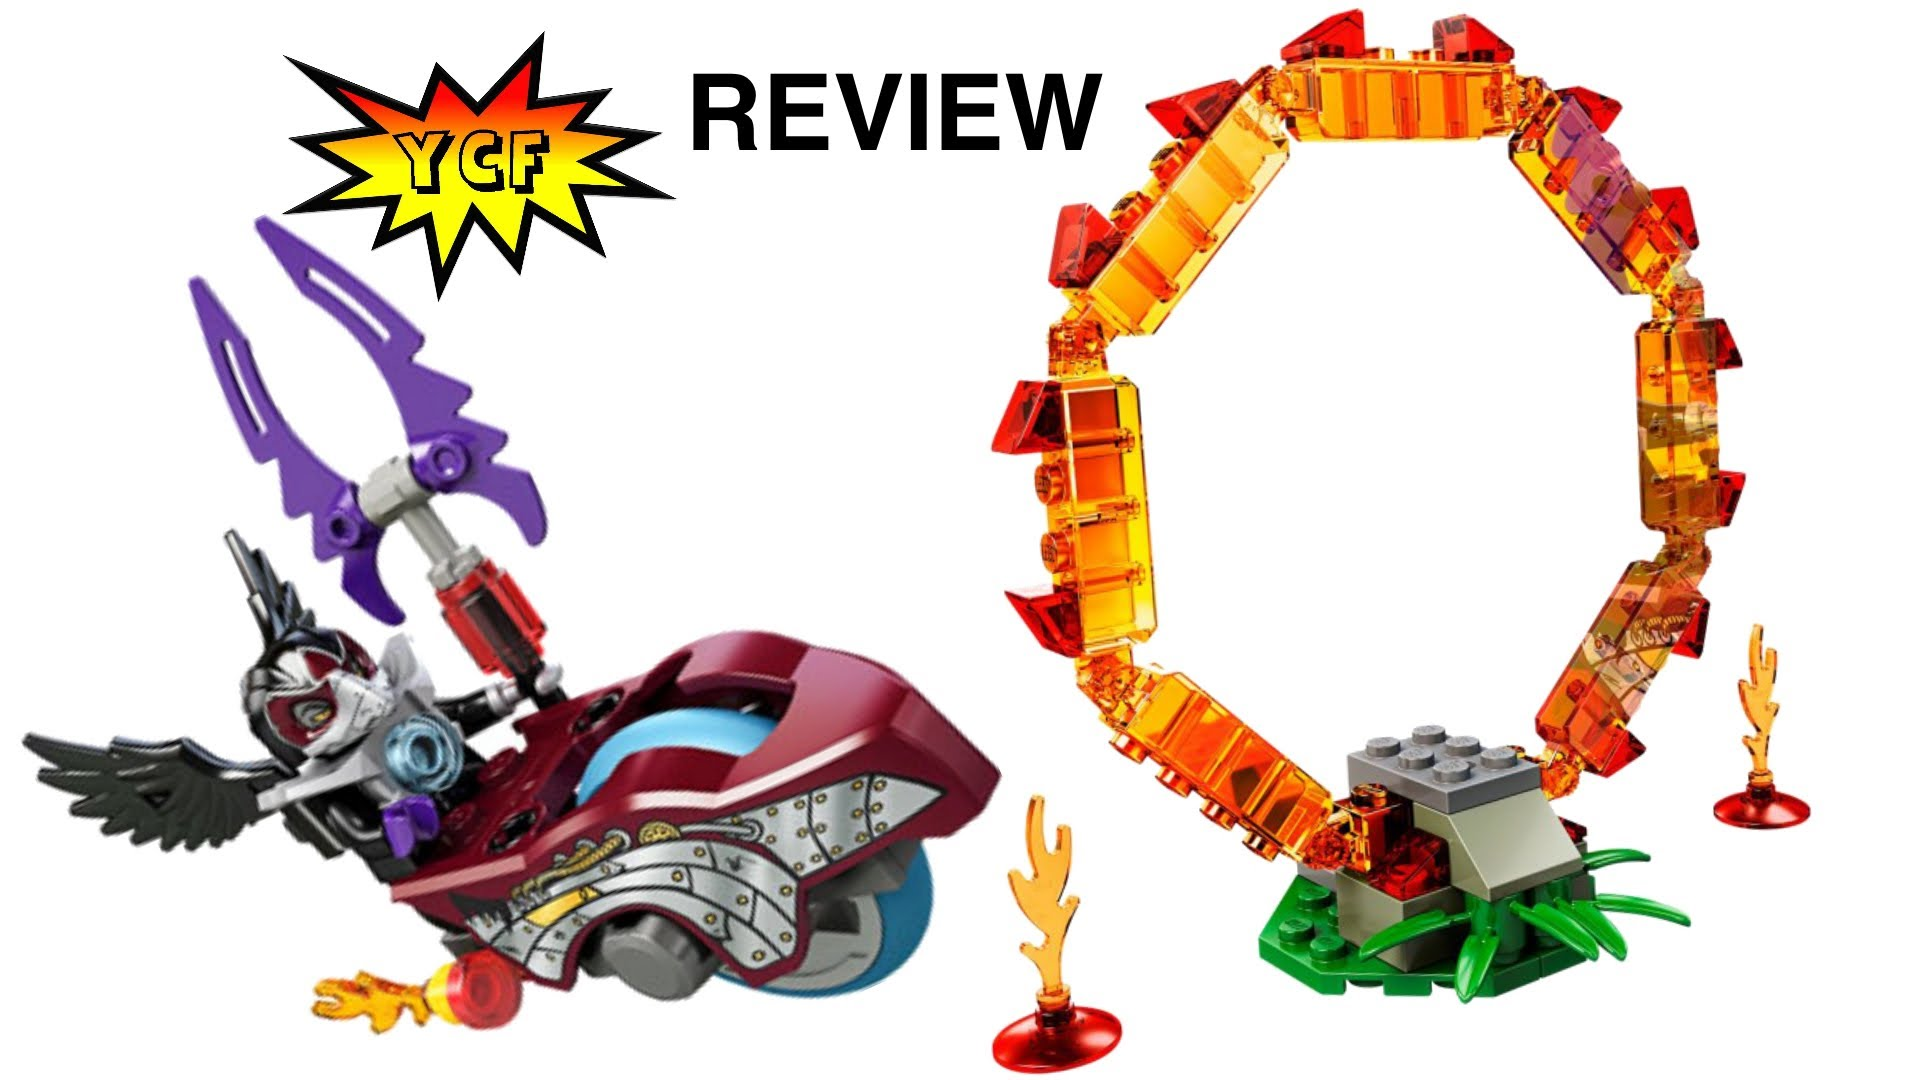 1920x1080 Lego Chima Ring Of Fire 70100 Speedorz Legends Of Chima Set Review